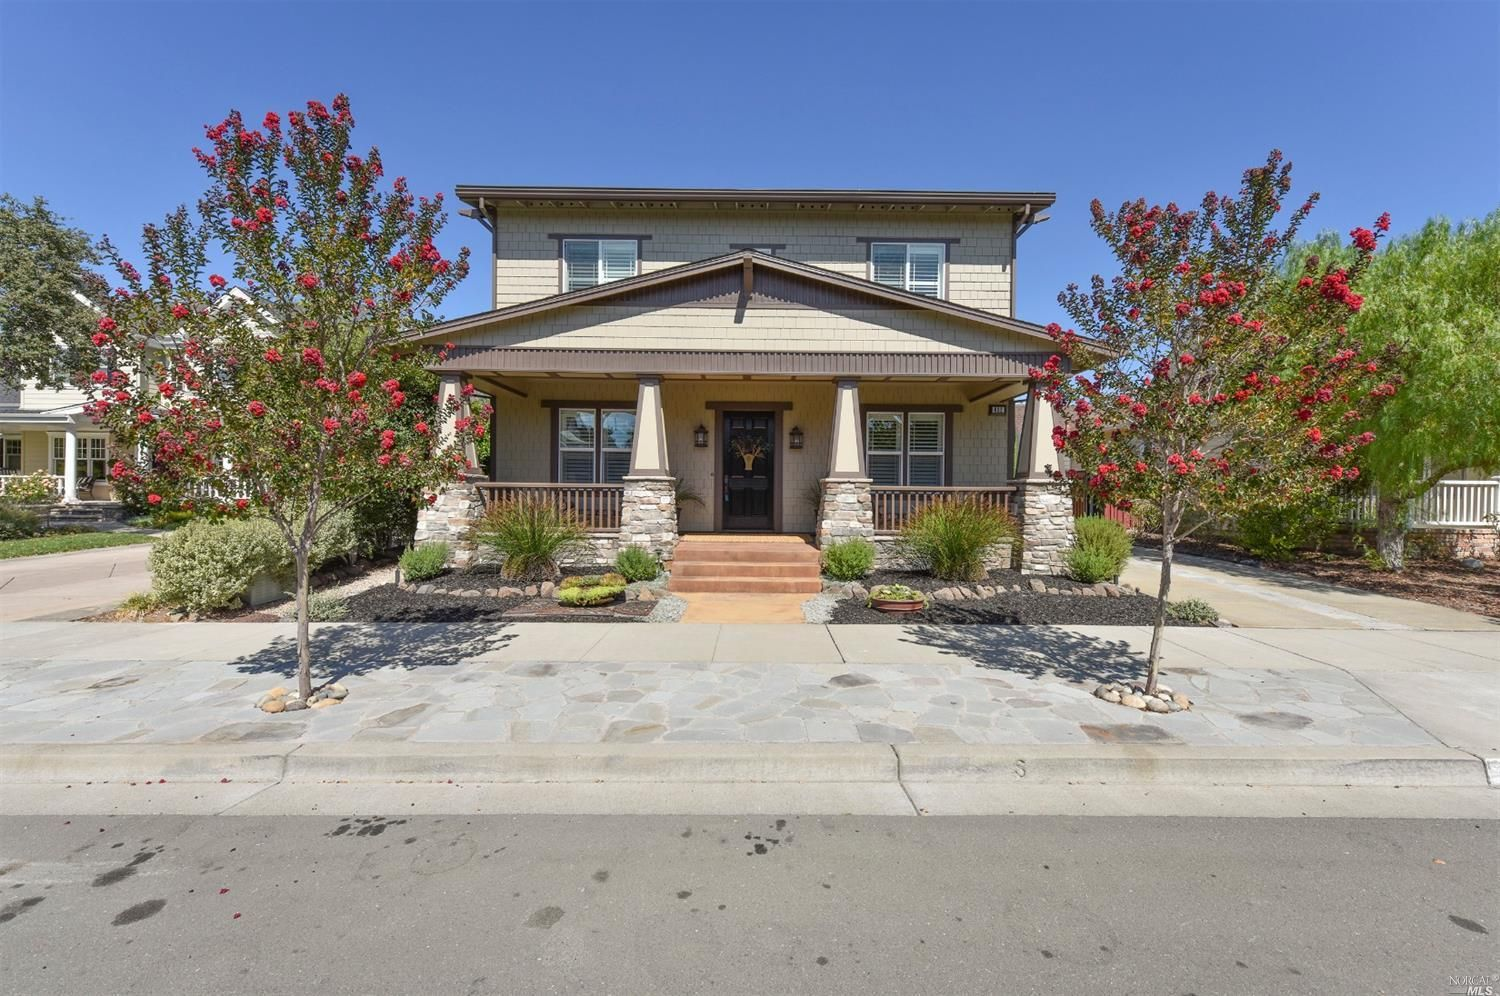 Featured Homes Craftsman style home, Grand foyer, House